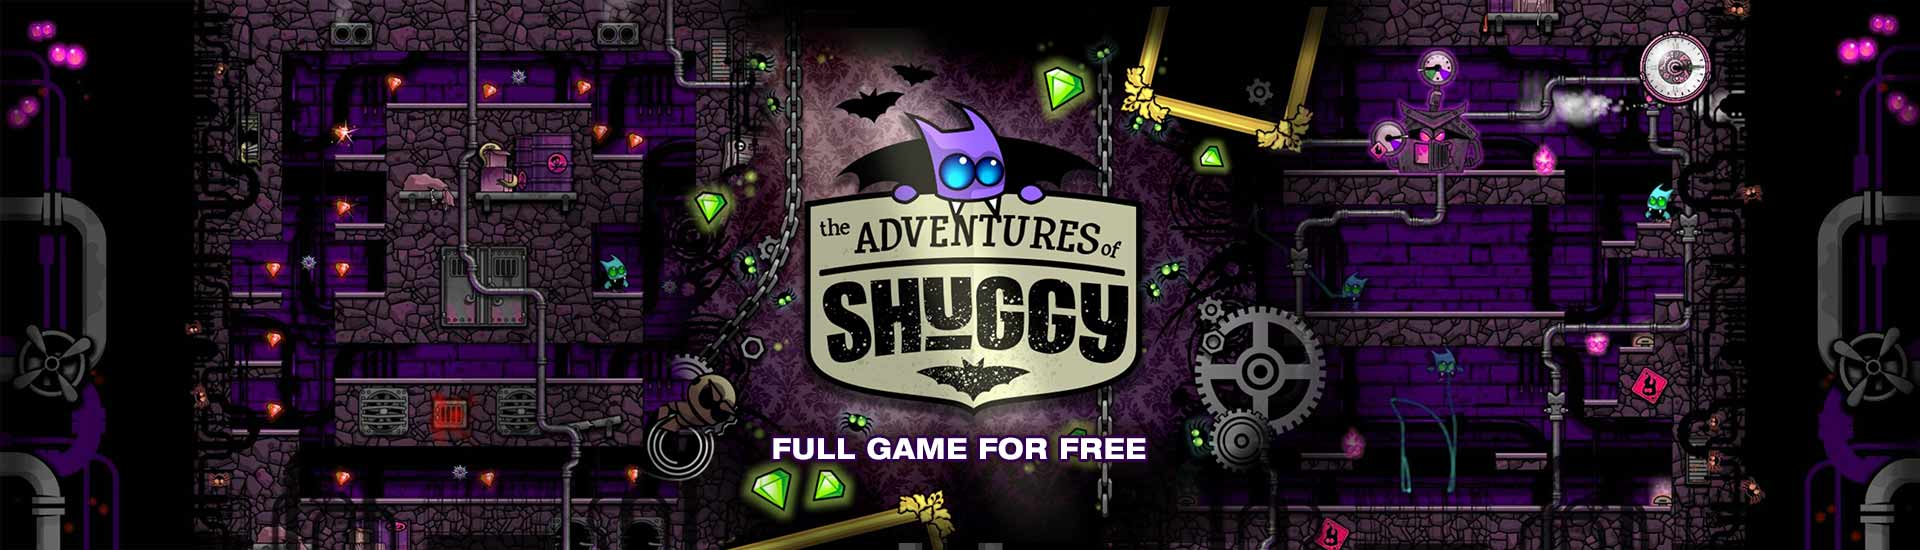 Adventures of Shuggy cover